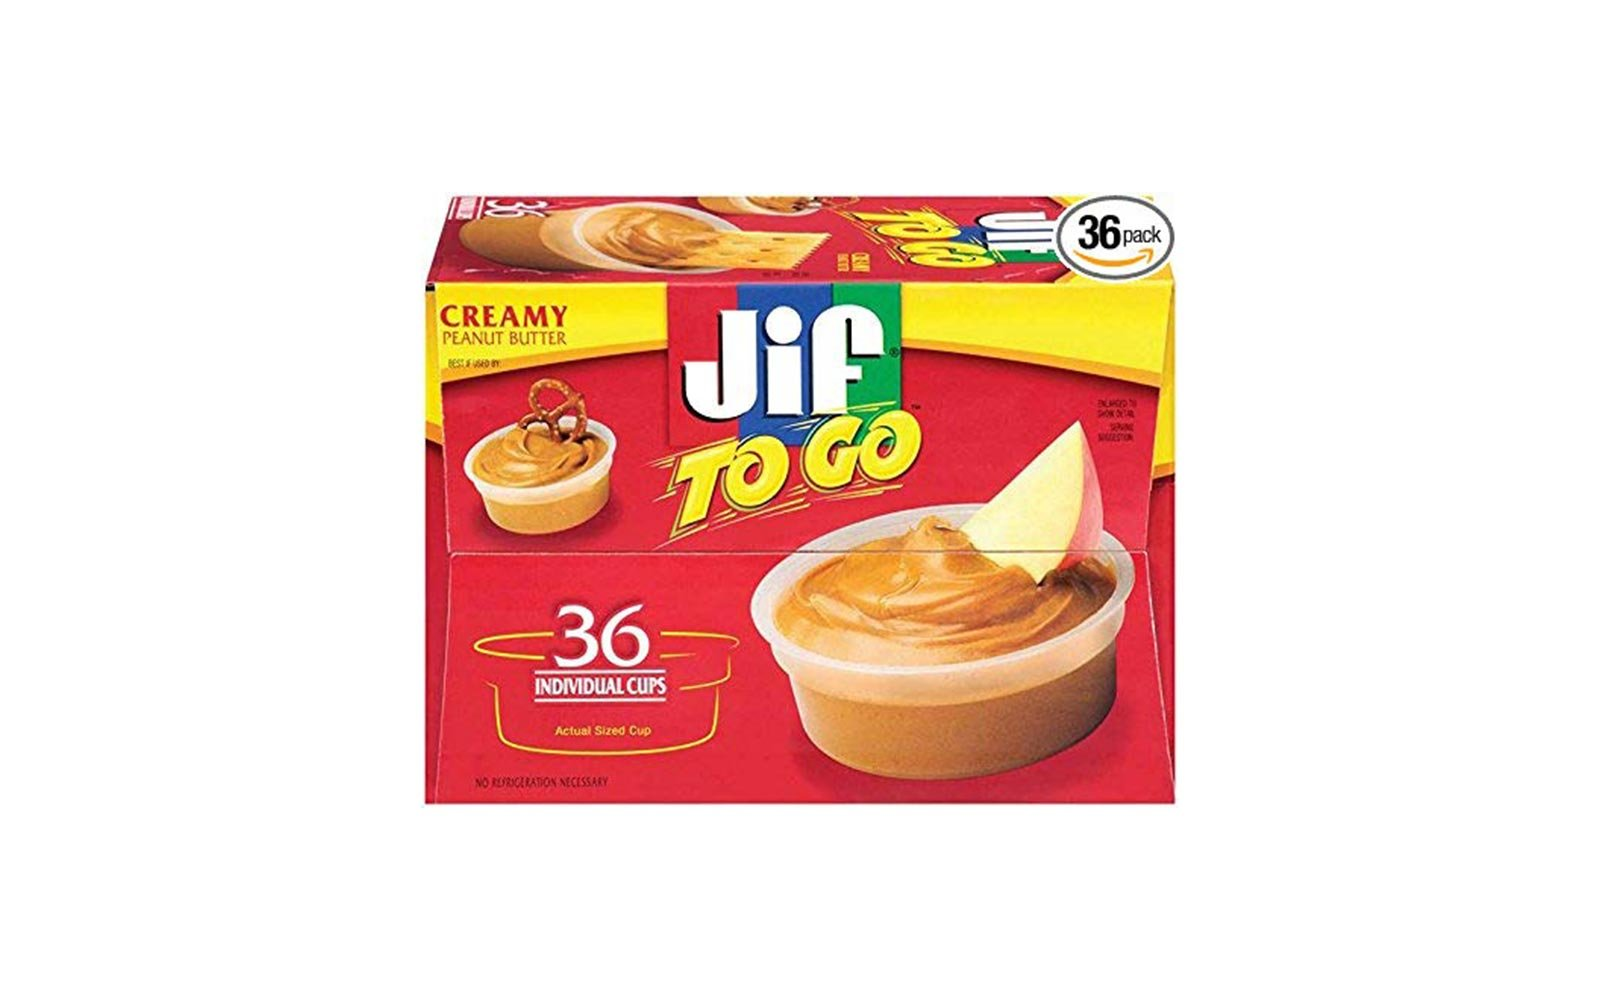 Jif to go packs